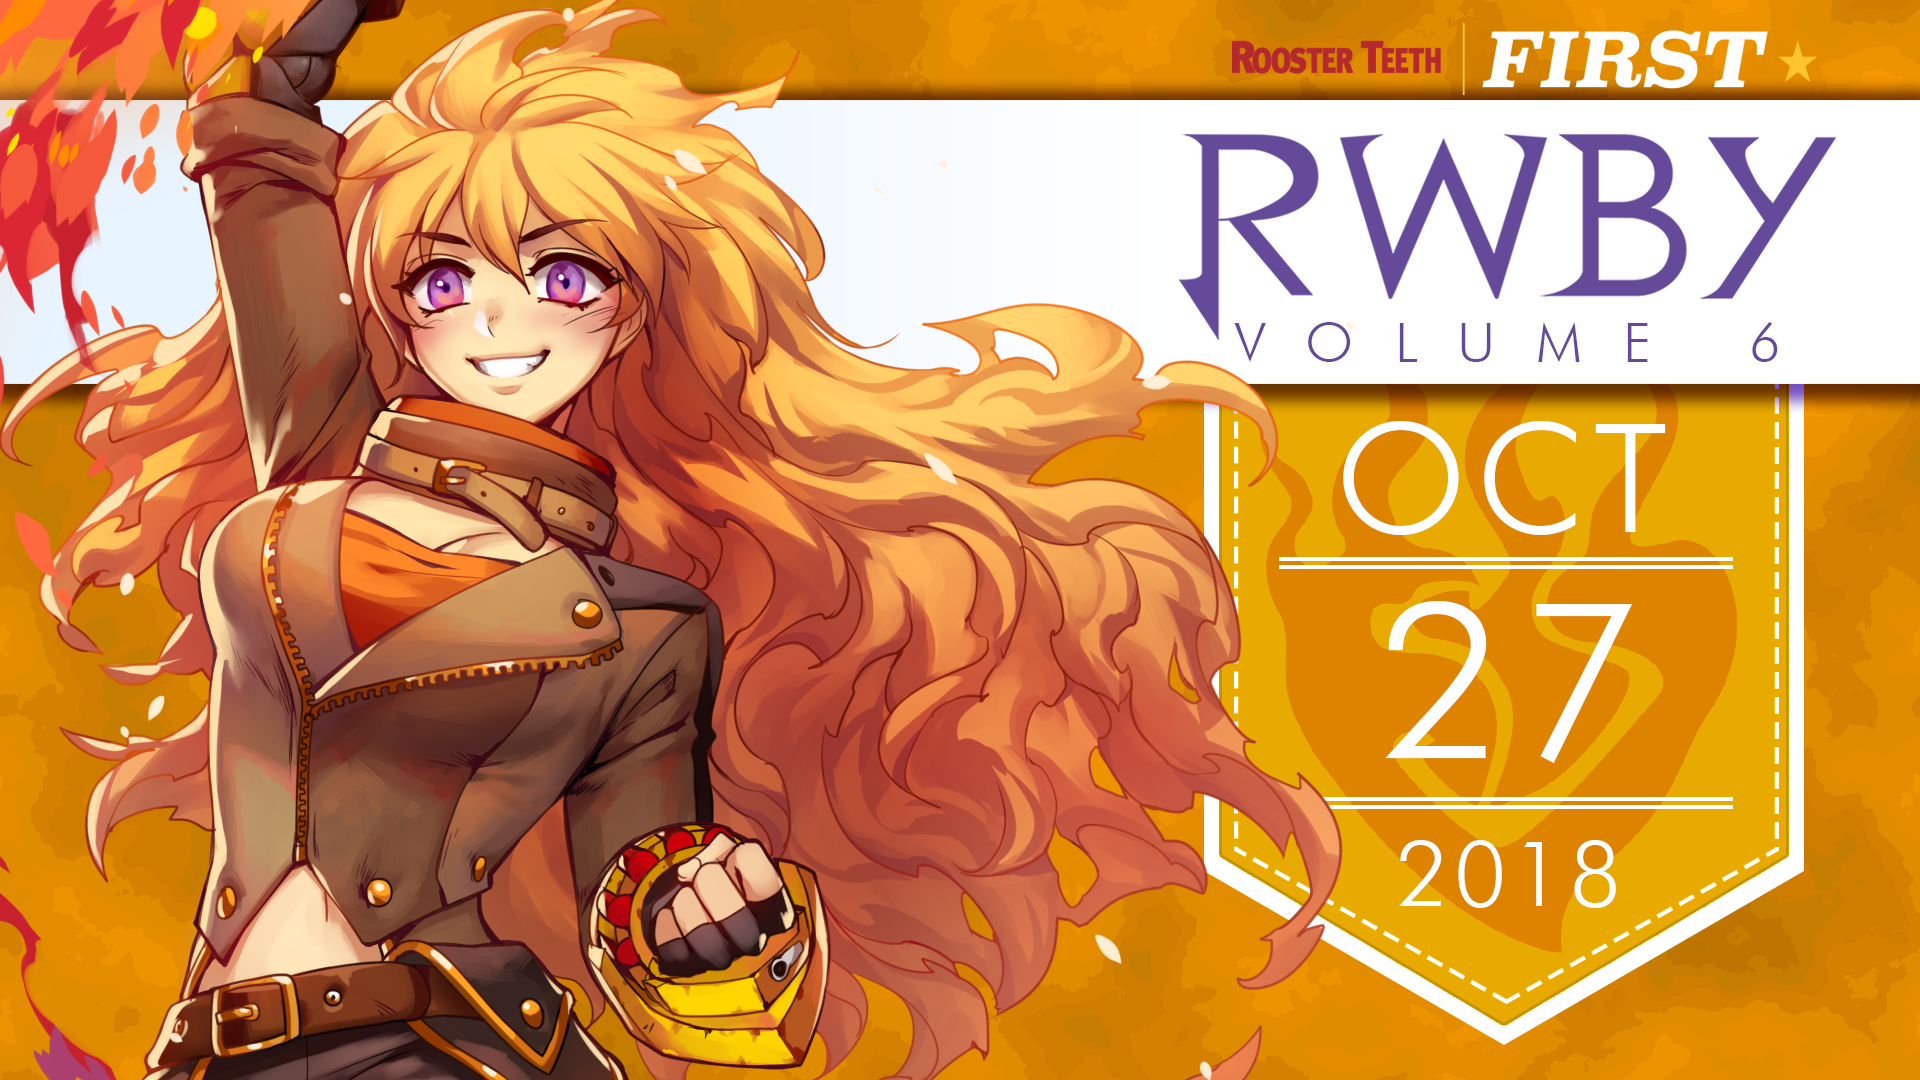 RWBY' Volume 6 Spoilers: Everything We Learned From RTX 2018   Inverse